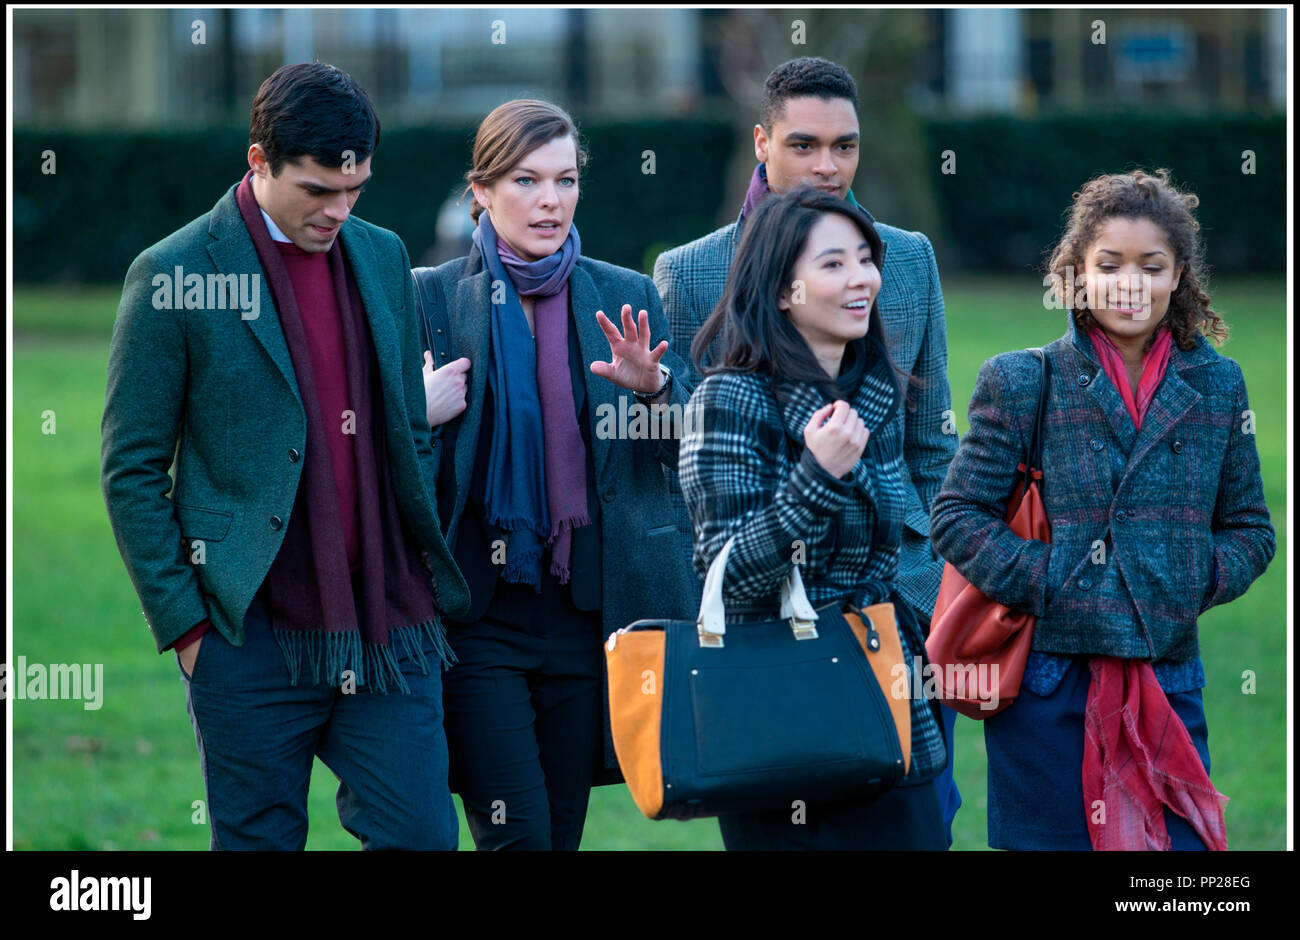 Prod DB © Nu Image Films - Millennium Films - Winkler Films - Survivor Productions / DR SURVIVOR de James McTeigue 2015 USA/GB avec Sean Teale, Milla Jovovich, Rege-Jean Page, Jing Lusi et Antonia Thomas action, espionnage, parc, Londres - Stock Image